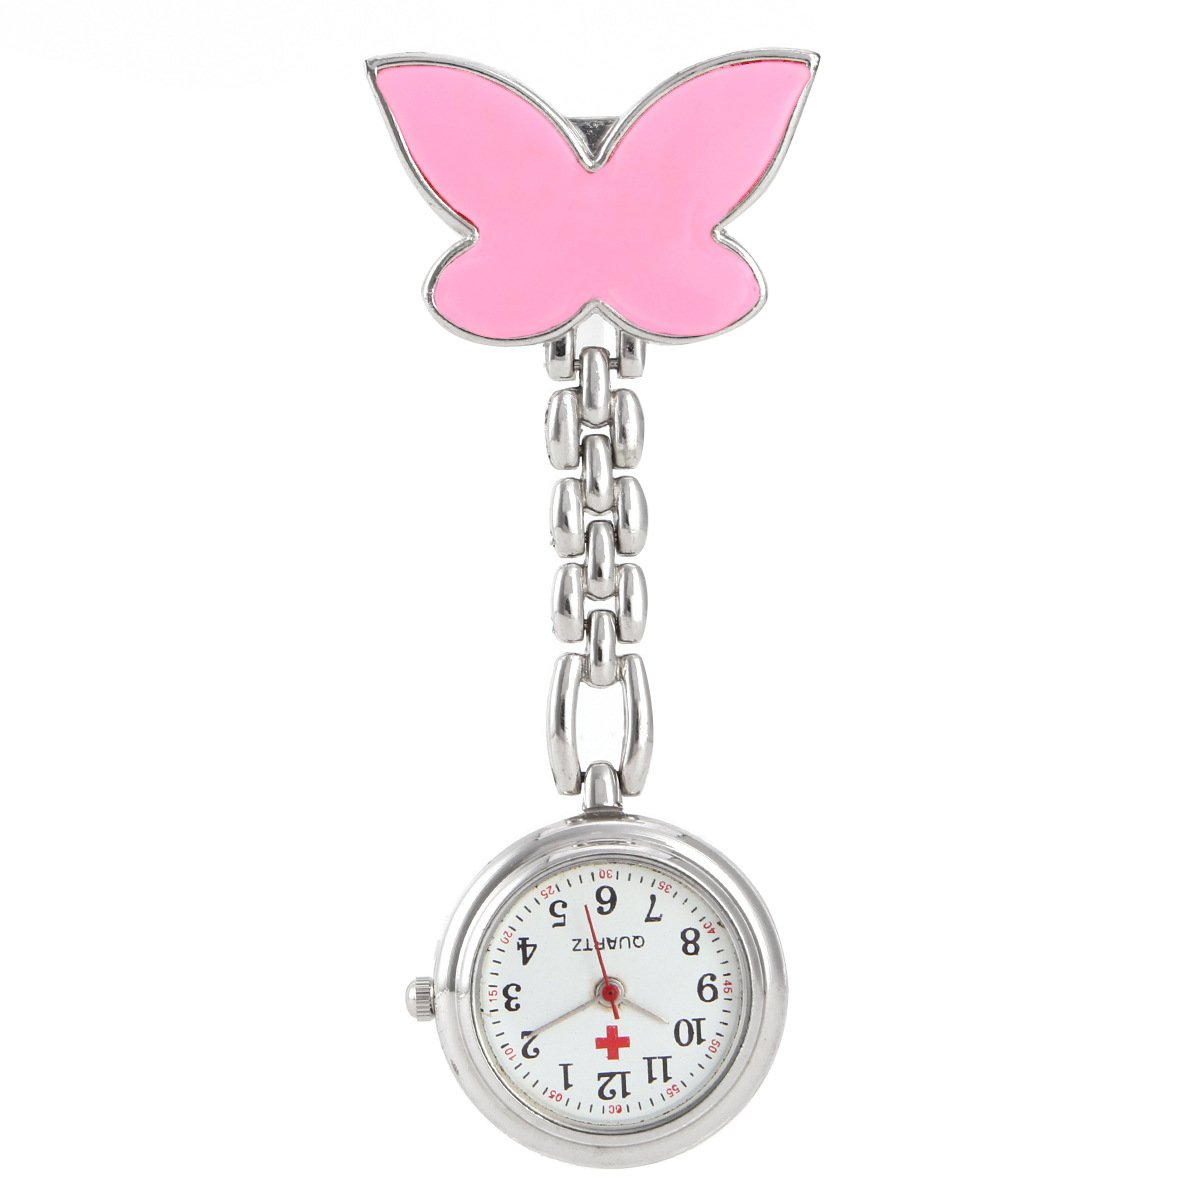 abefdb2aab4 Get Quotations · Pocket Watch, GreenDimension Pink Cute Nurse Watch Clip-on Fob  Brooch Pendant Hanging Butterfly